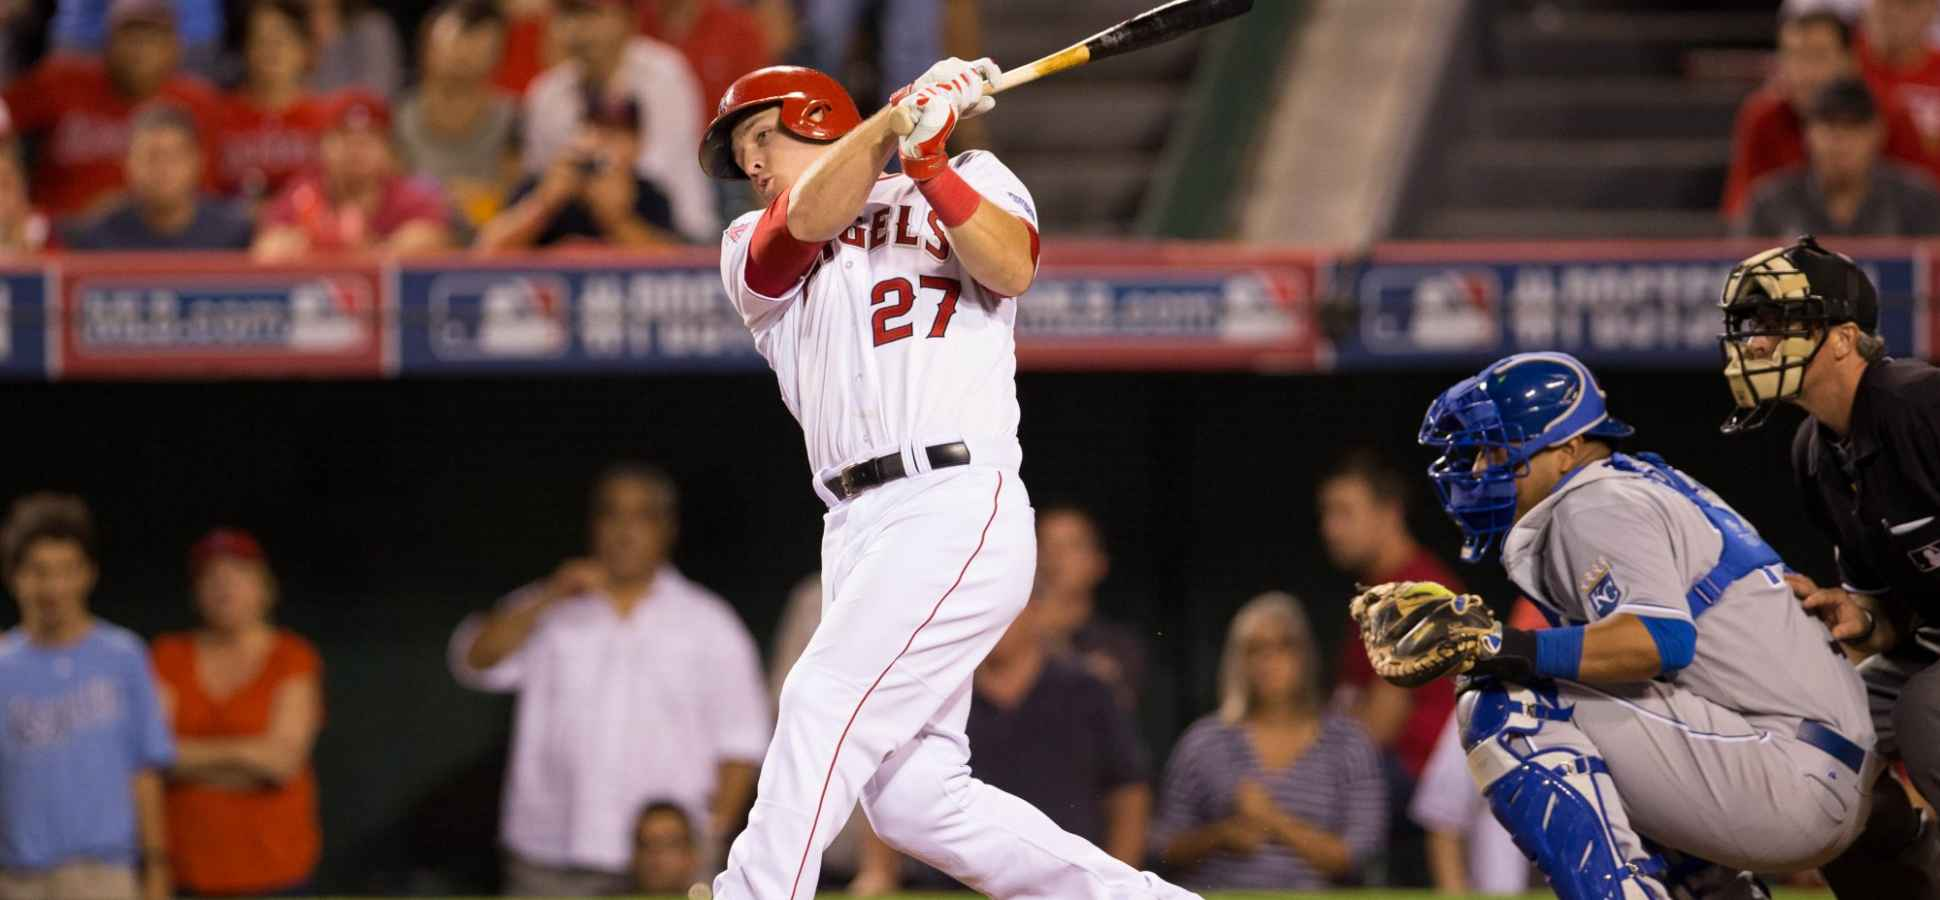 4 Things Mike Trout Can Teach You About Quiet Leadership | Inc com